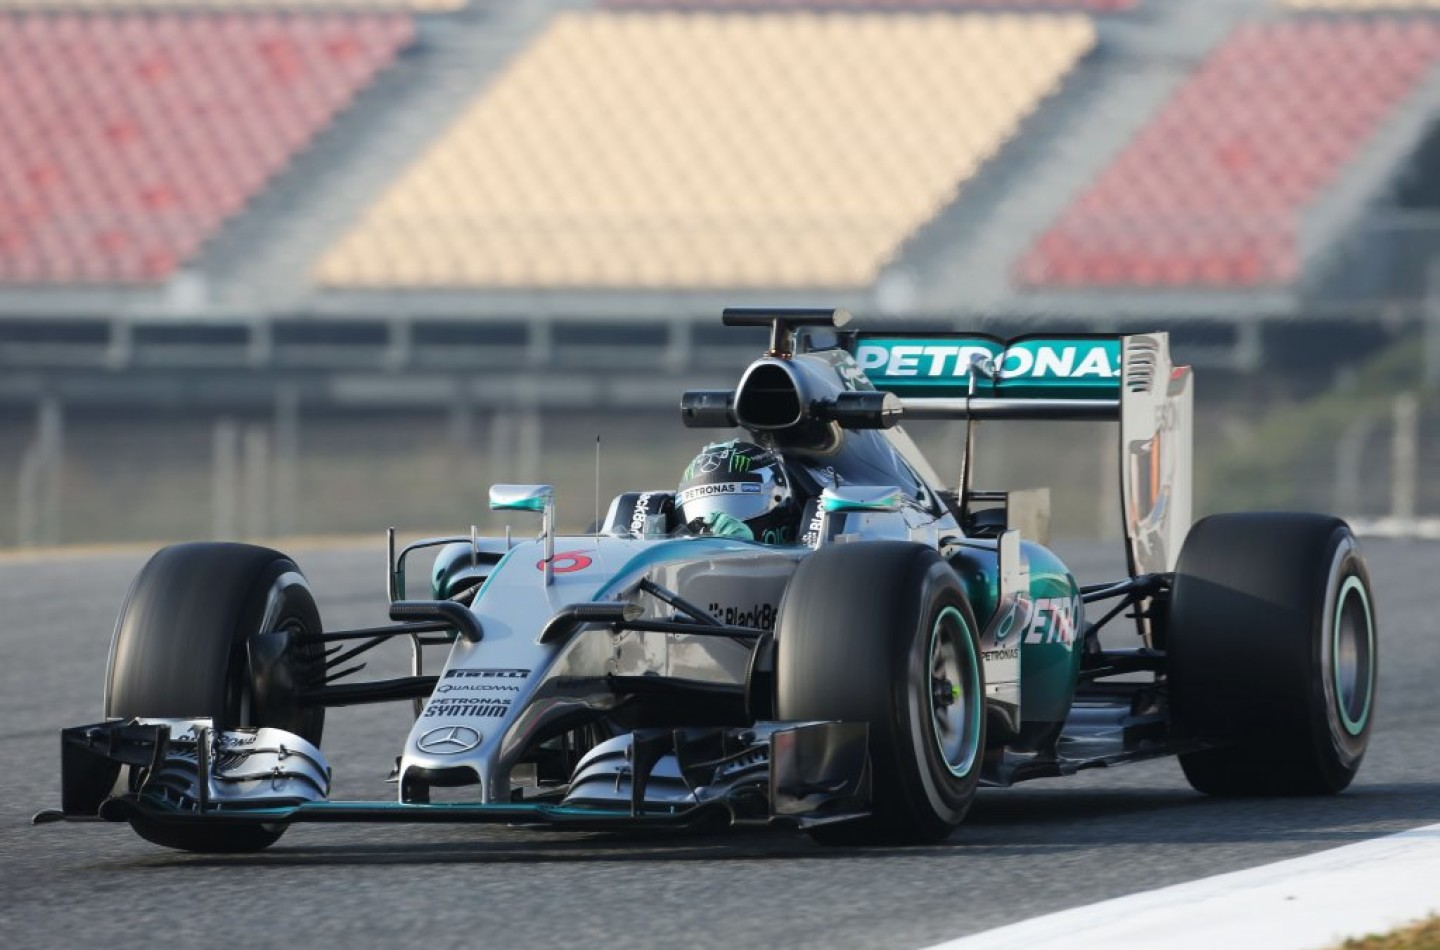 Sepang, prove libere 3: Mercedes, poi Ferrari e Williams